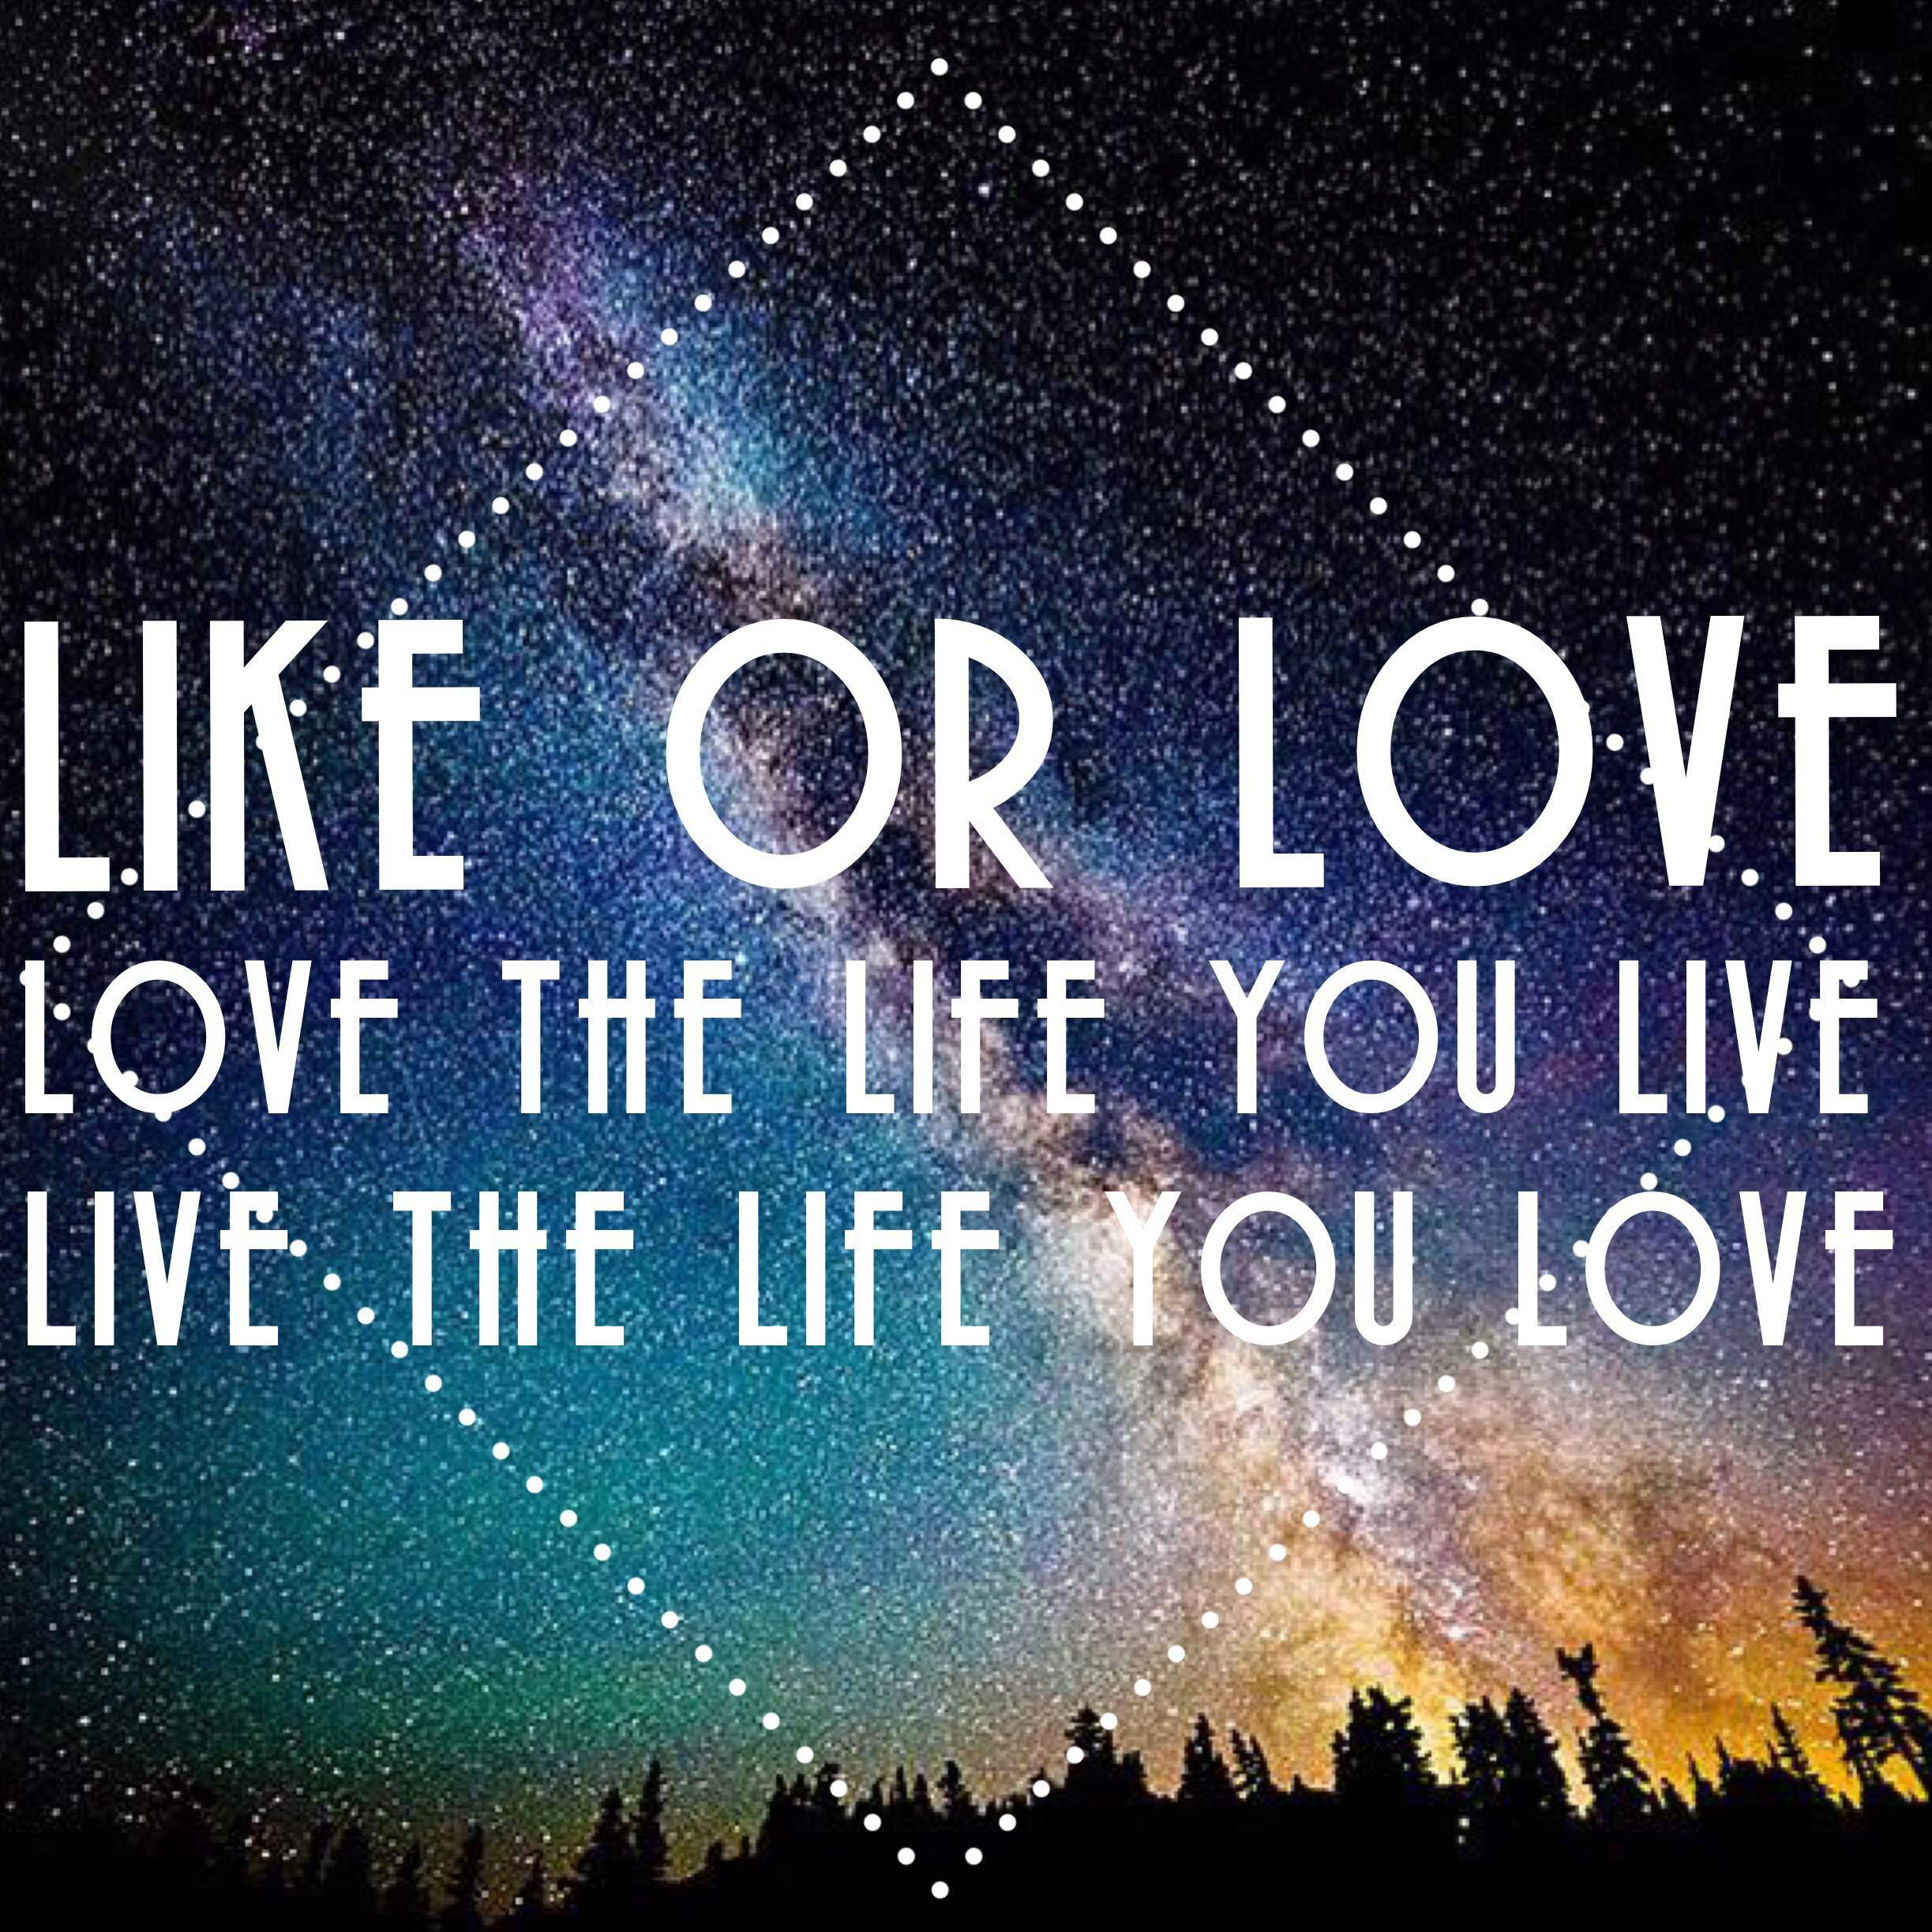 LIKE OR LOVE ~LOVE THE LIFE YOU LIVE, LIVE THE LIFE YOU LOVE~